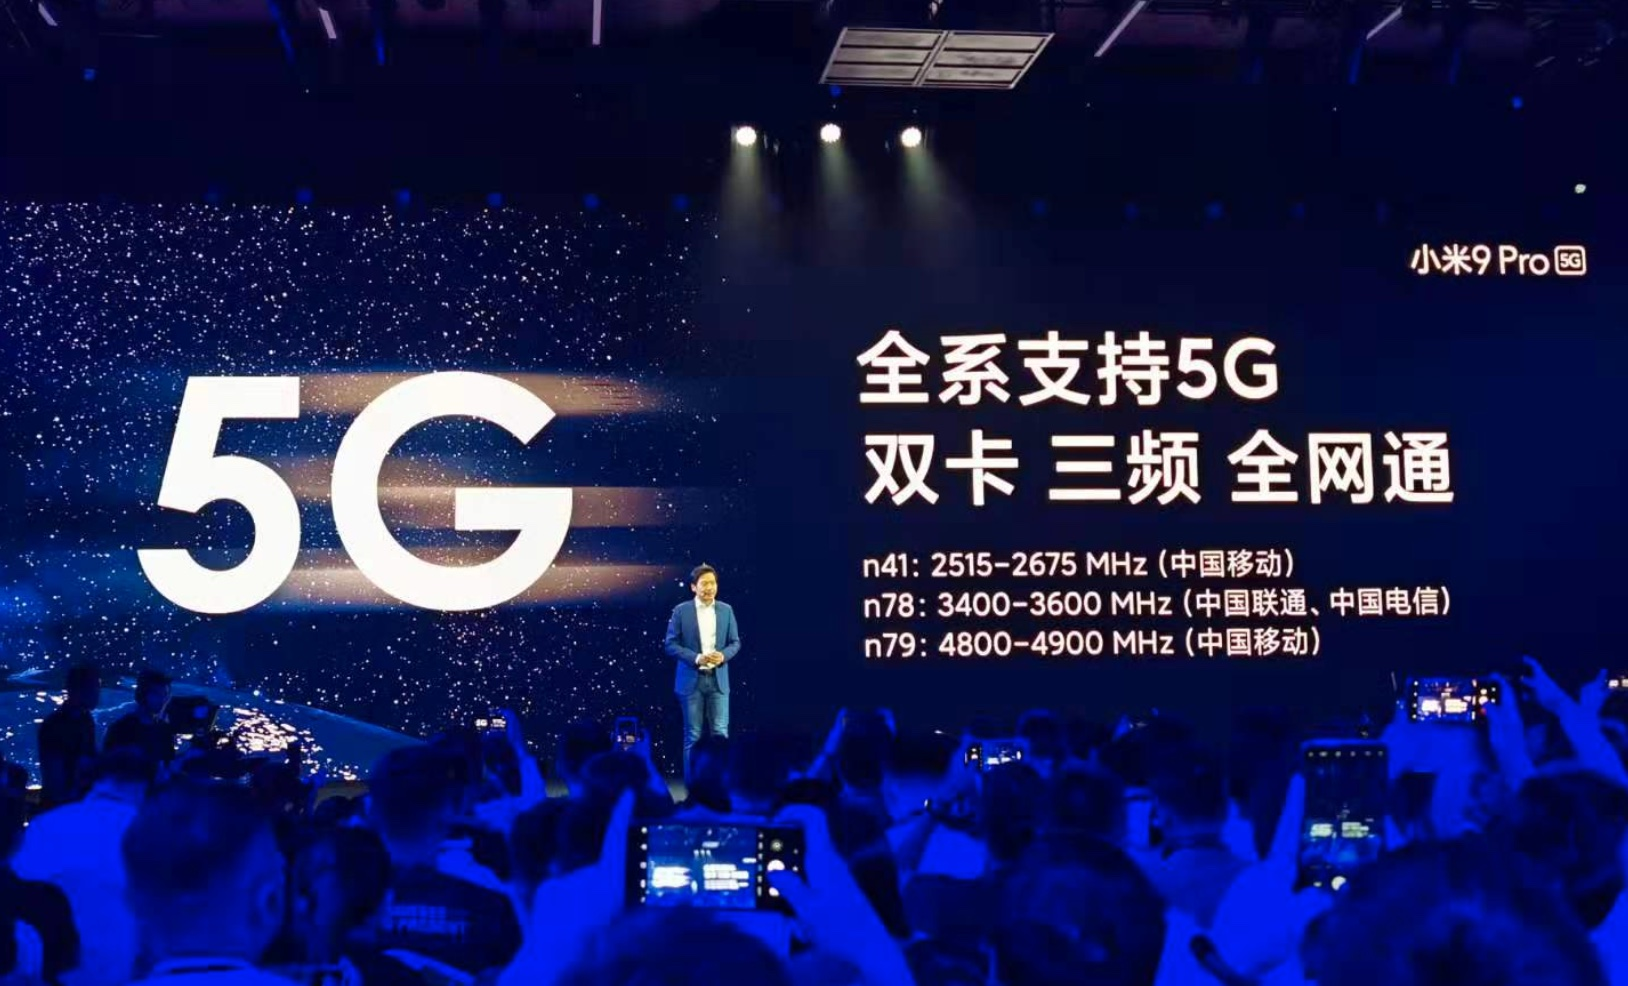 Half of phones applying for regulatory approval in China in Q2 are 5G phones-cnTechPost